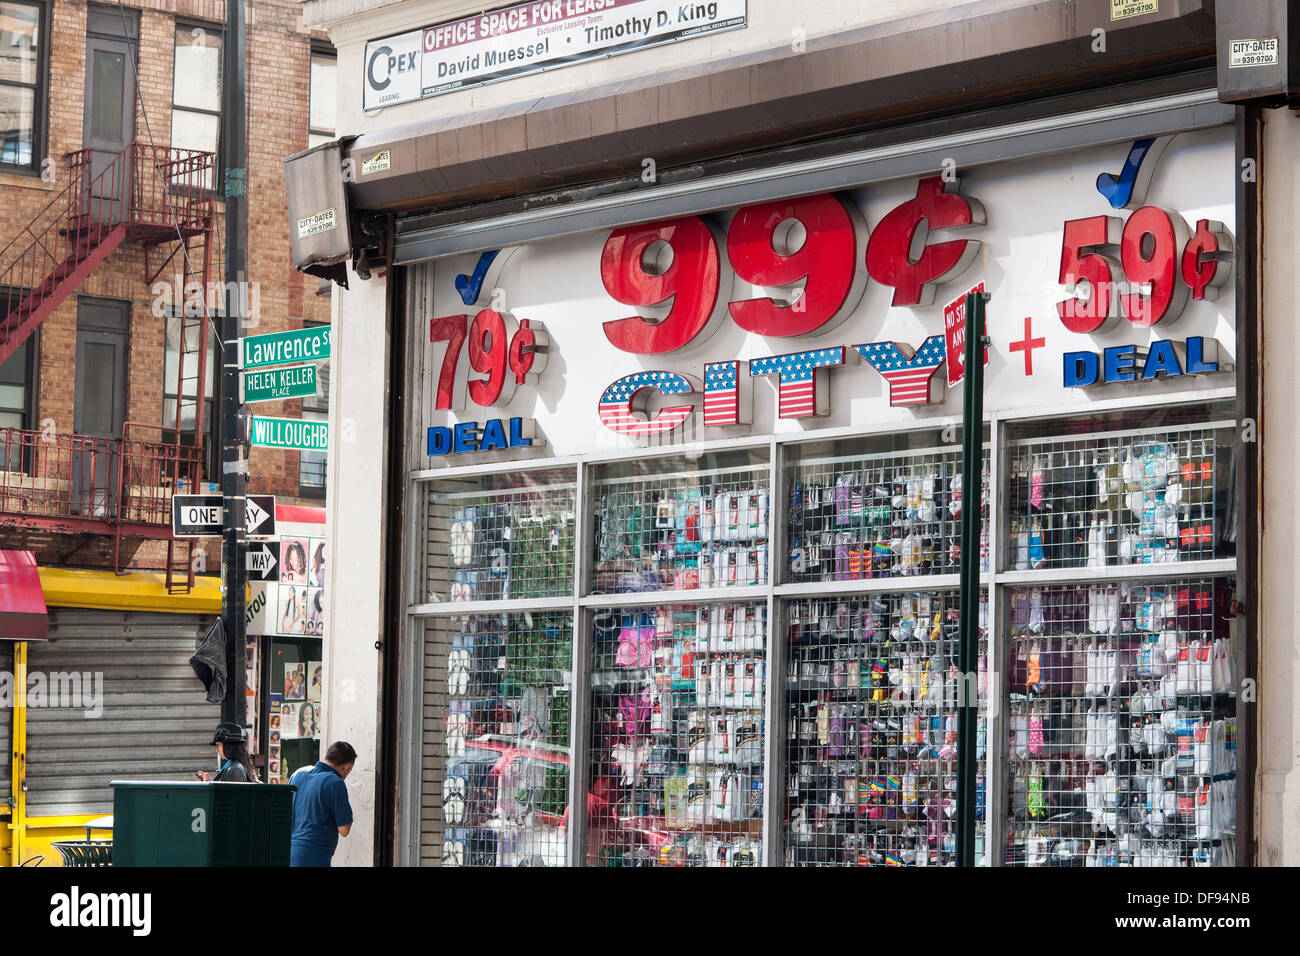 99 Cent Store In Downtown Brooklyn New York